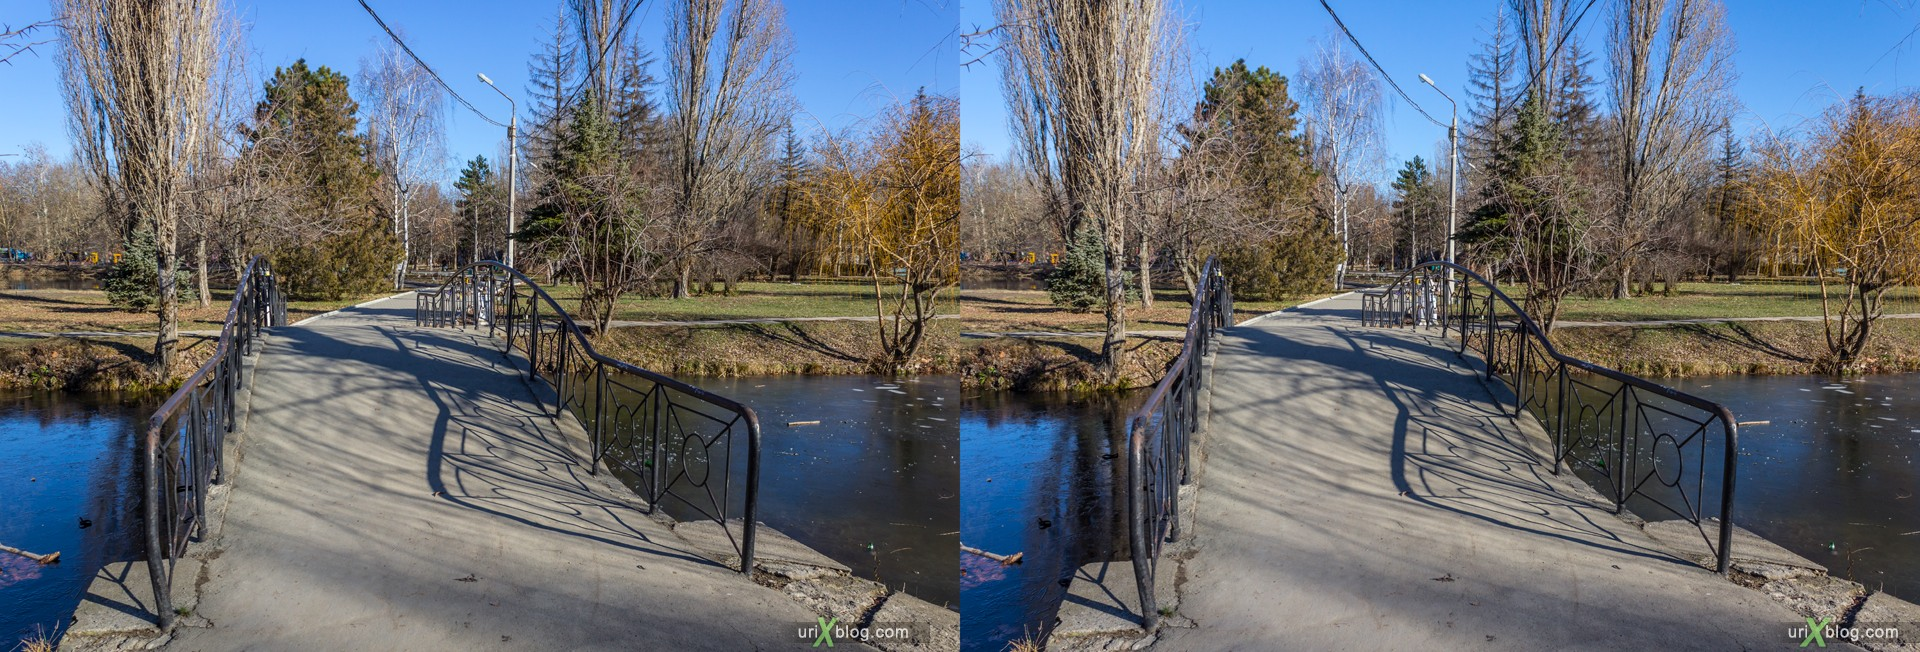 2012, Simferopol, Gagarin park, Crimea, Russia, Ukraine, winter, 3D, stereo pair, cross-eyed, crossview, cross view stereo pair, stereoscopic